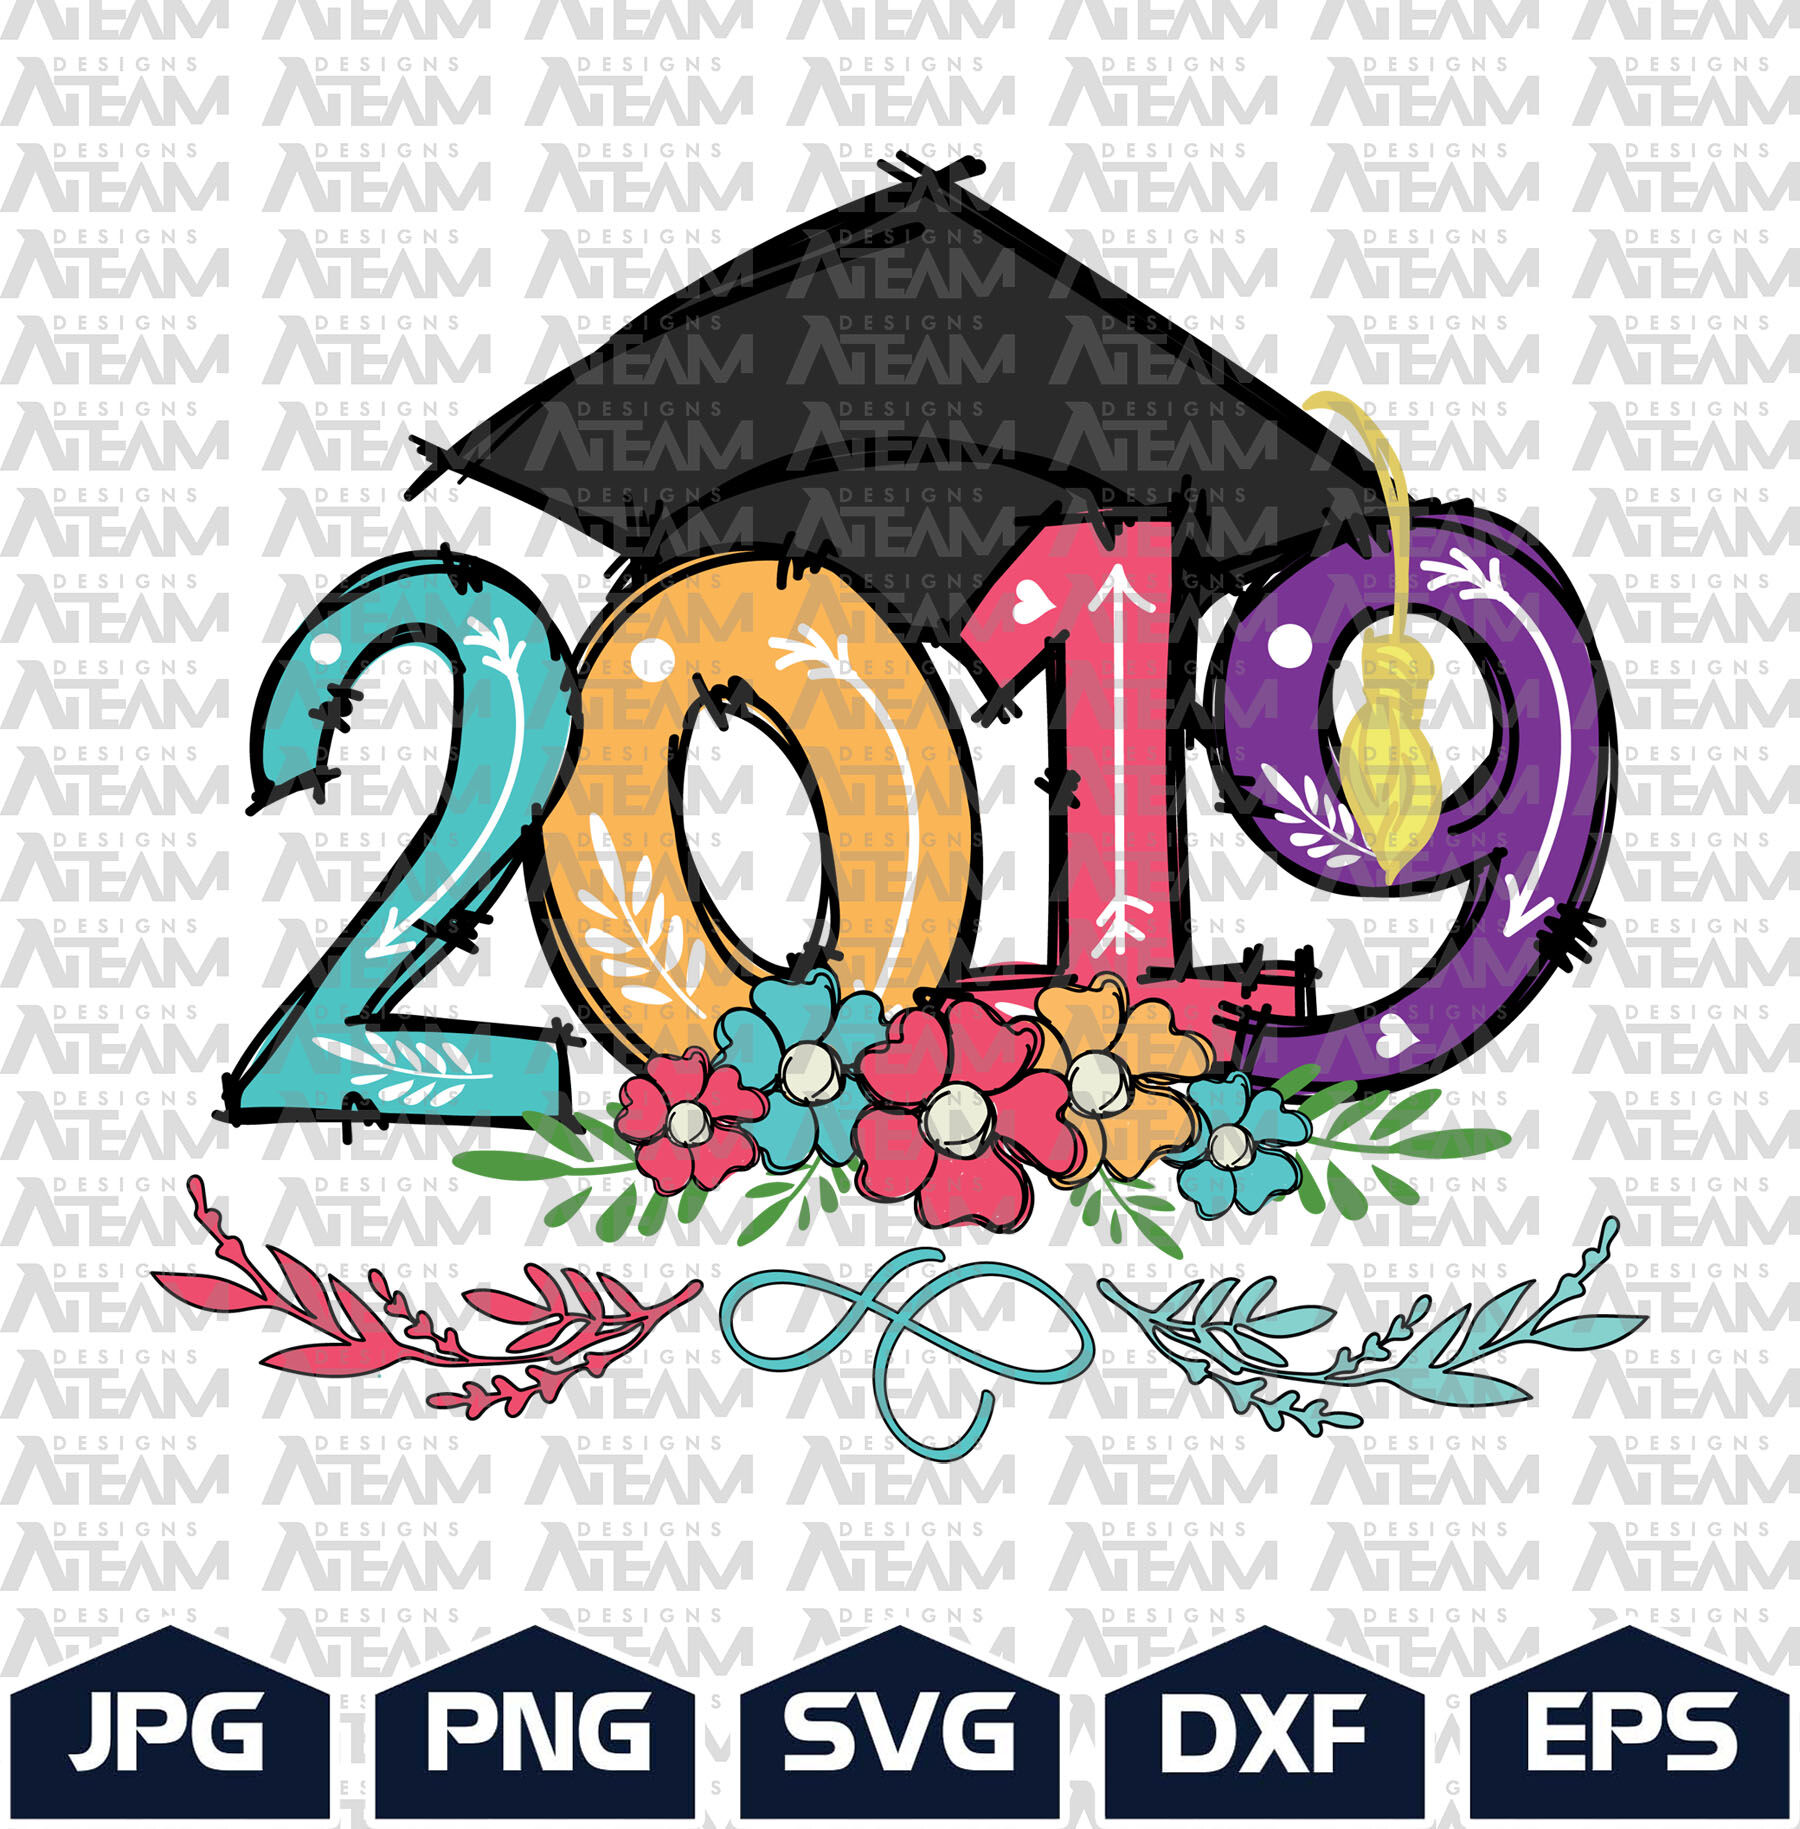 Happy Graduation Day 2019 Png Graduation Png By Lupinart